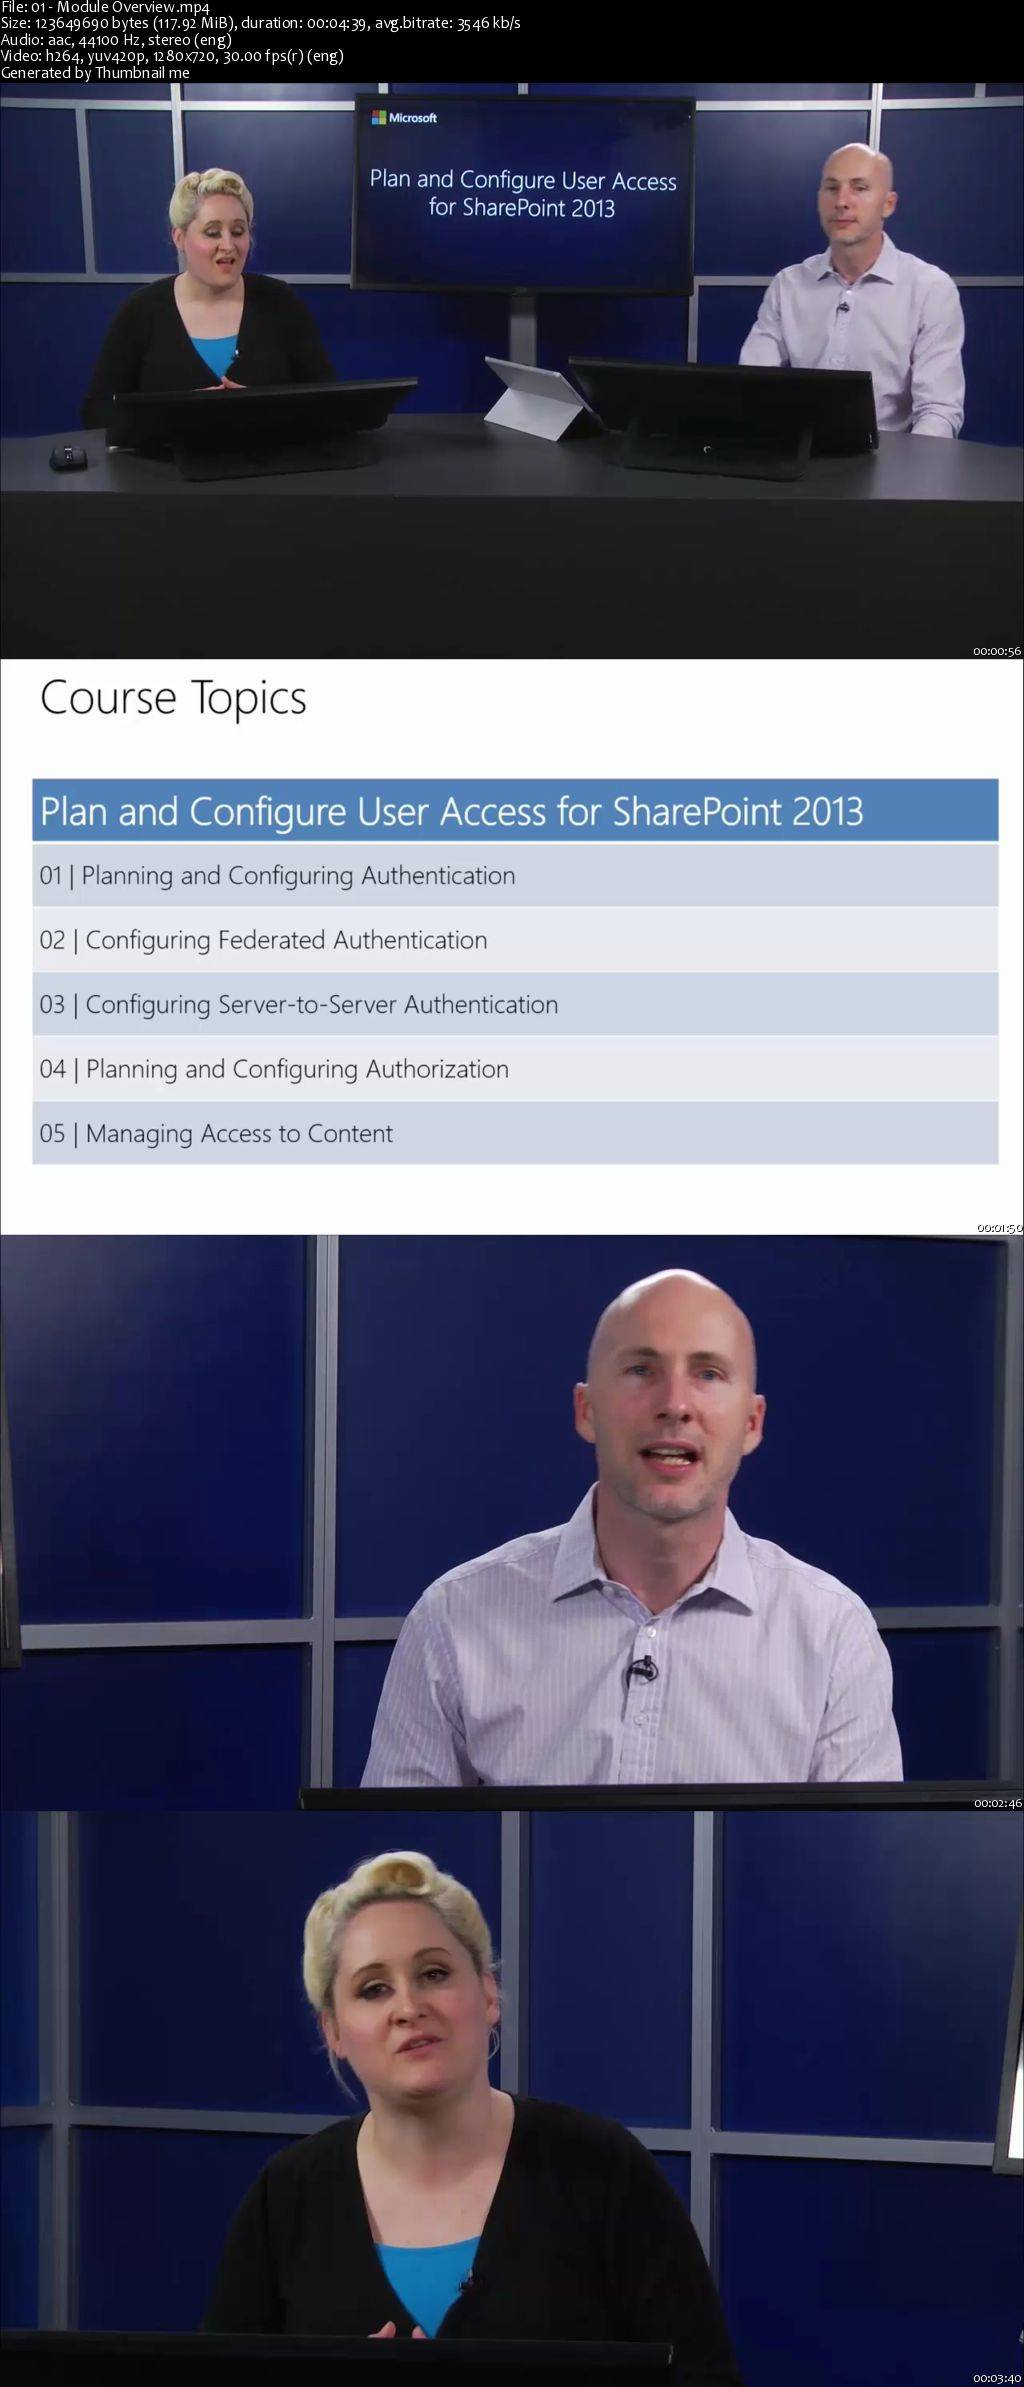 Plan and Configure User Access for SharePoint 2013